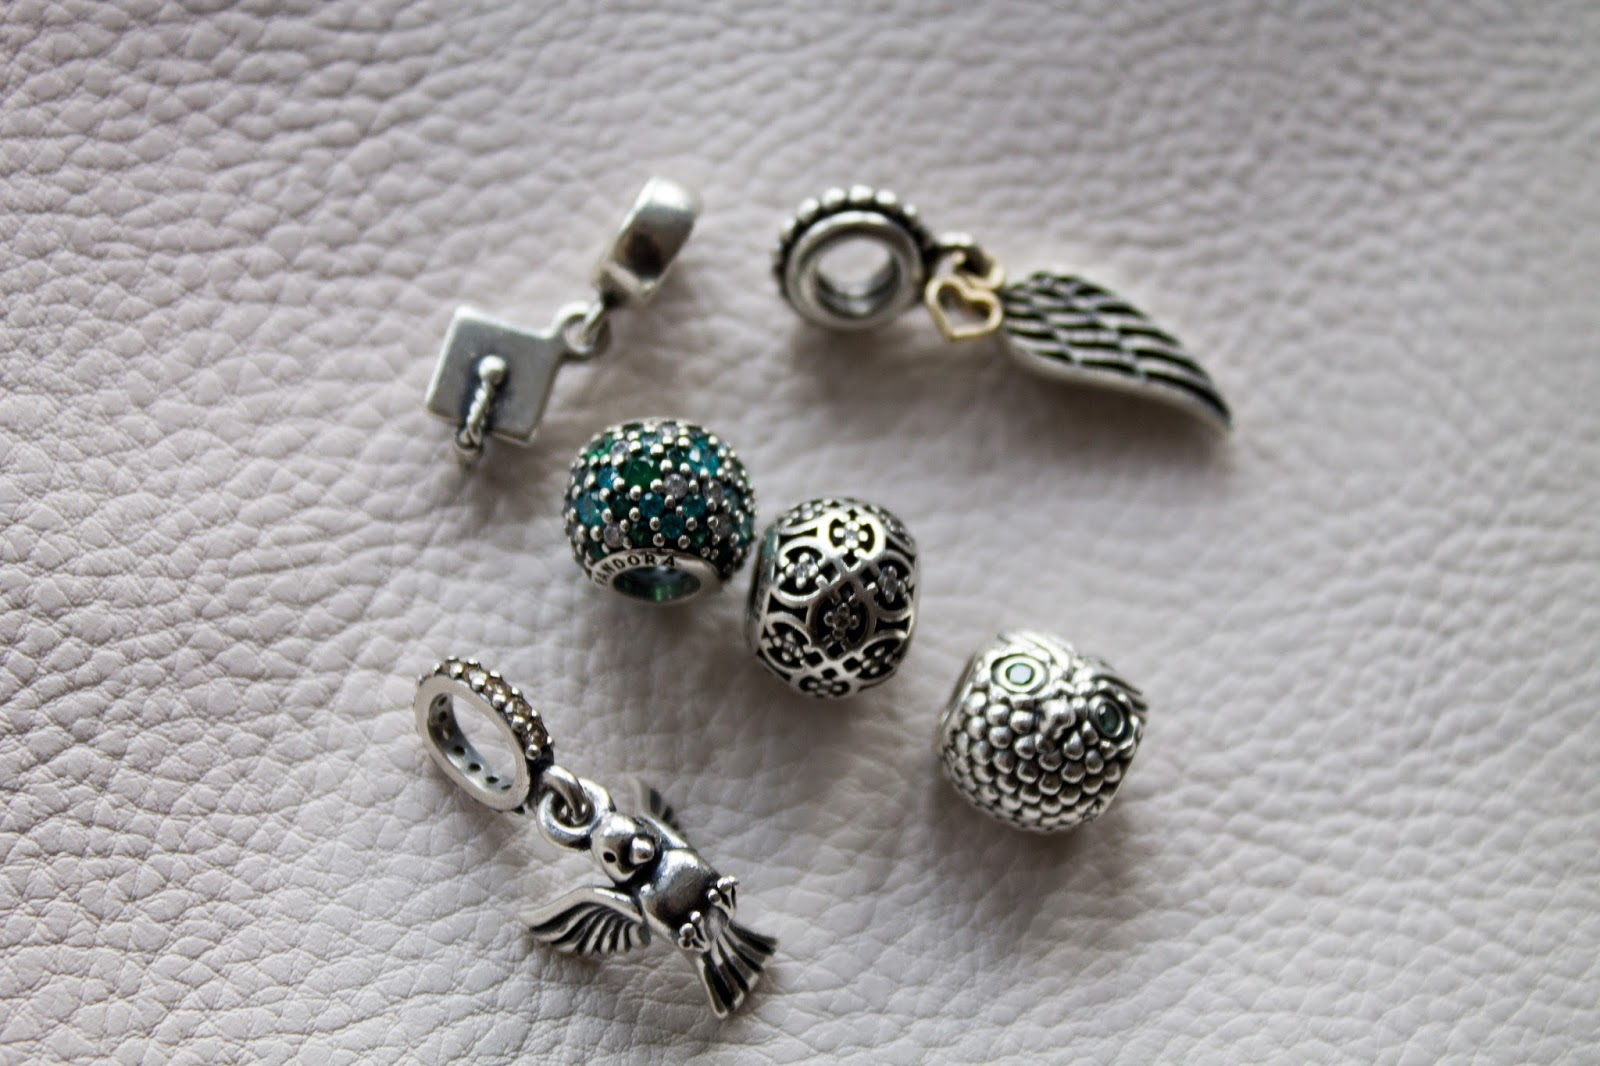 Pandora Bracelet Charms And Similar What To Expect Make Art Up